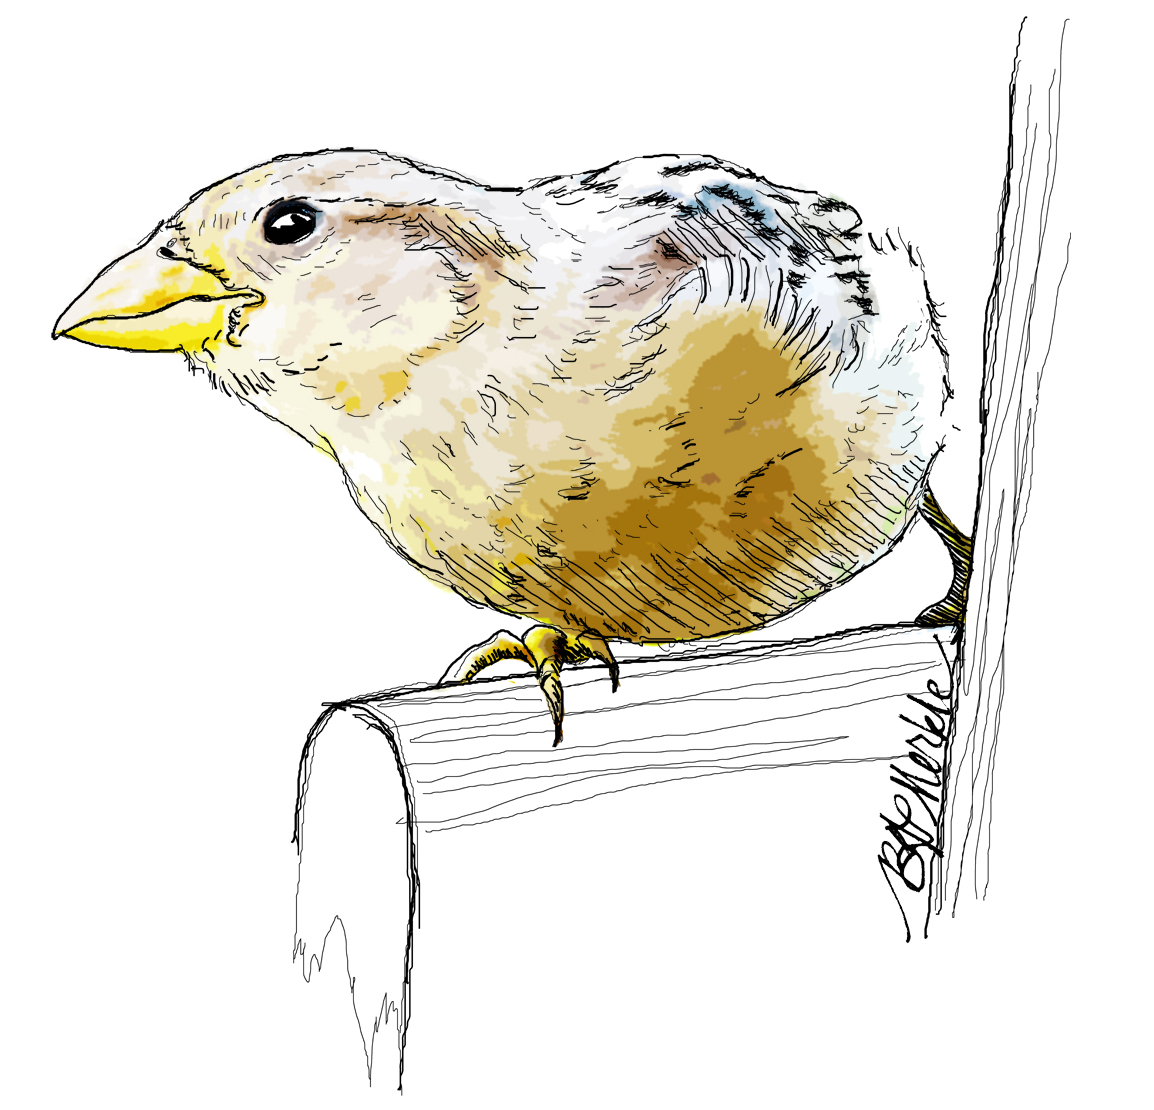 Finch on a perch_Illustration by Bethann Garramon Merkle, copyright 2015